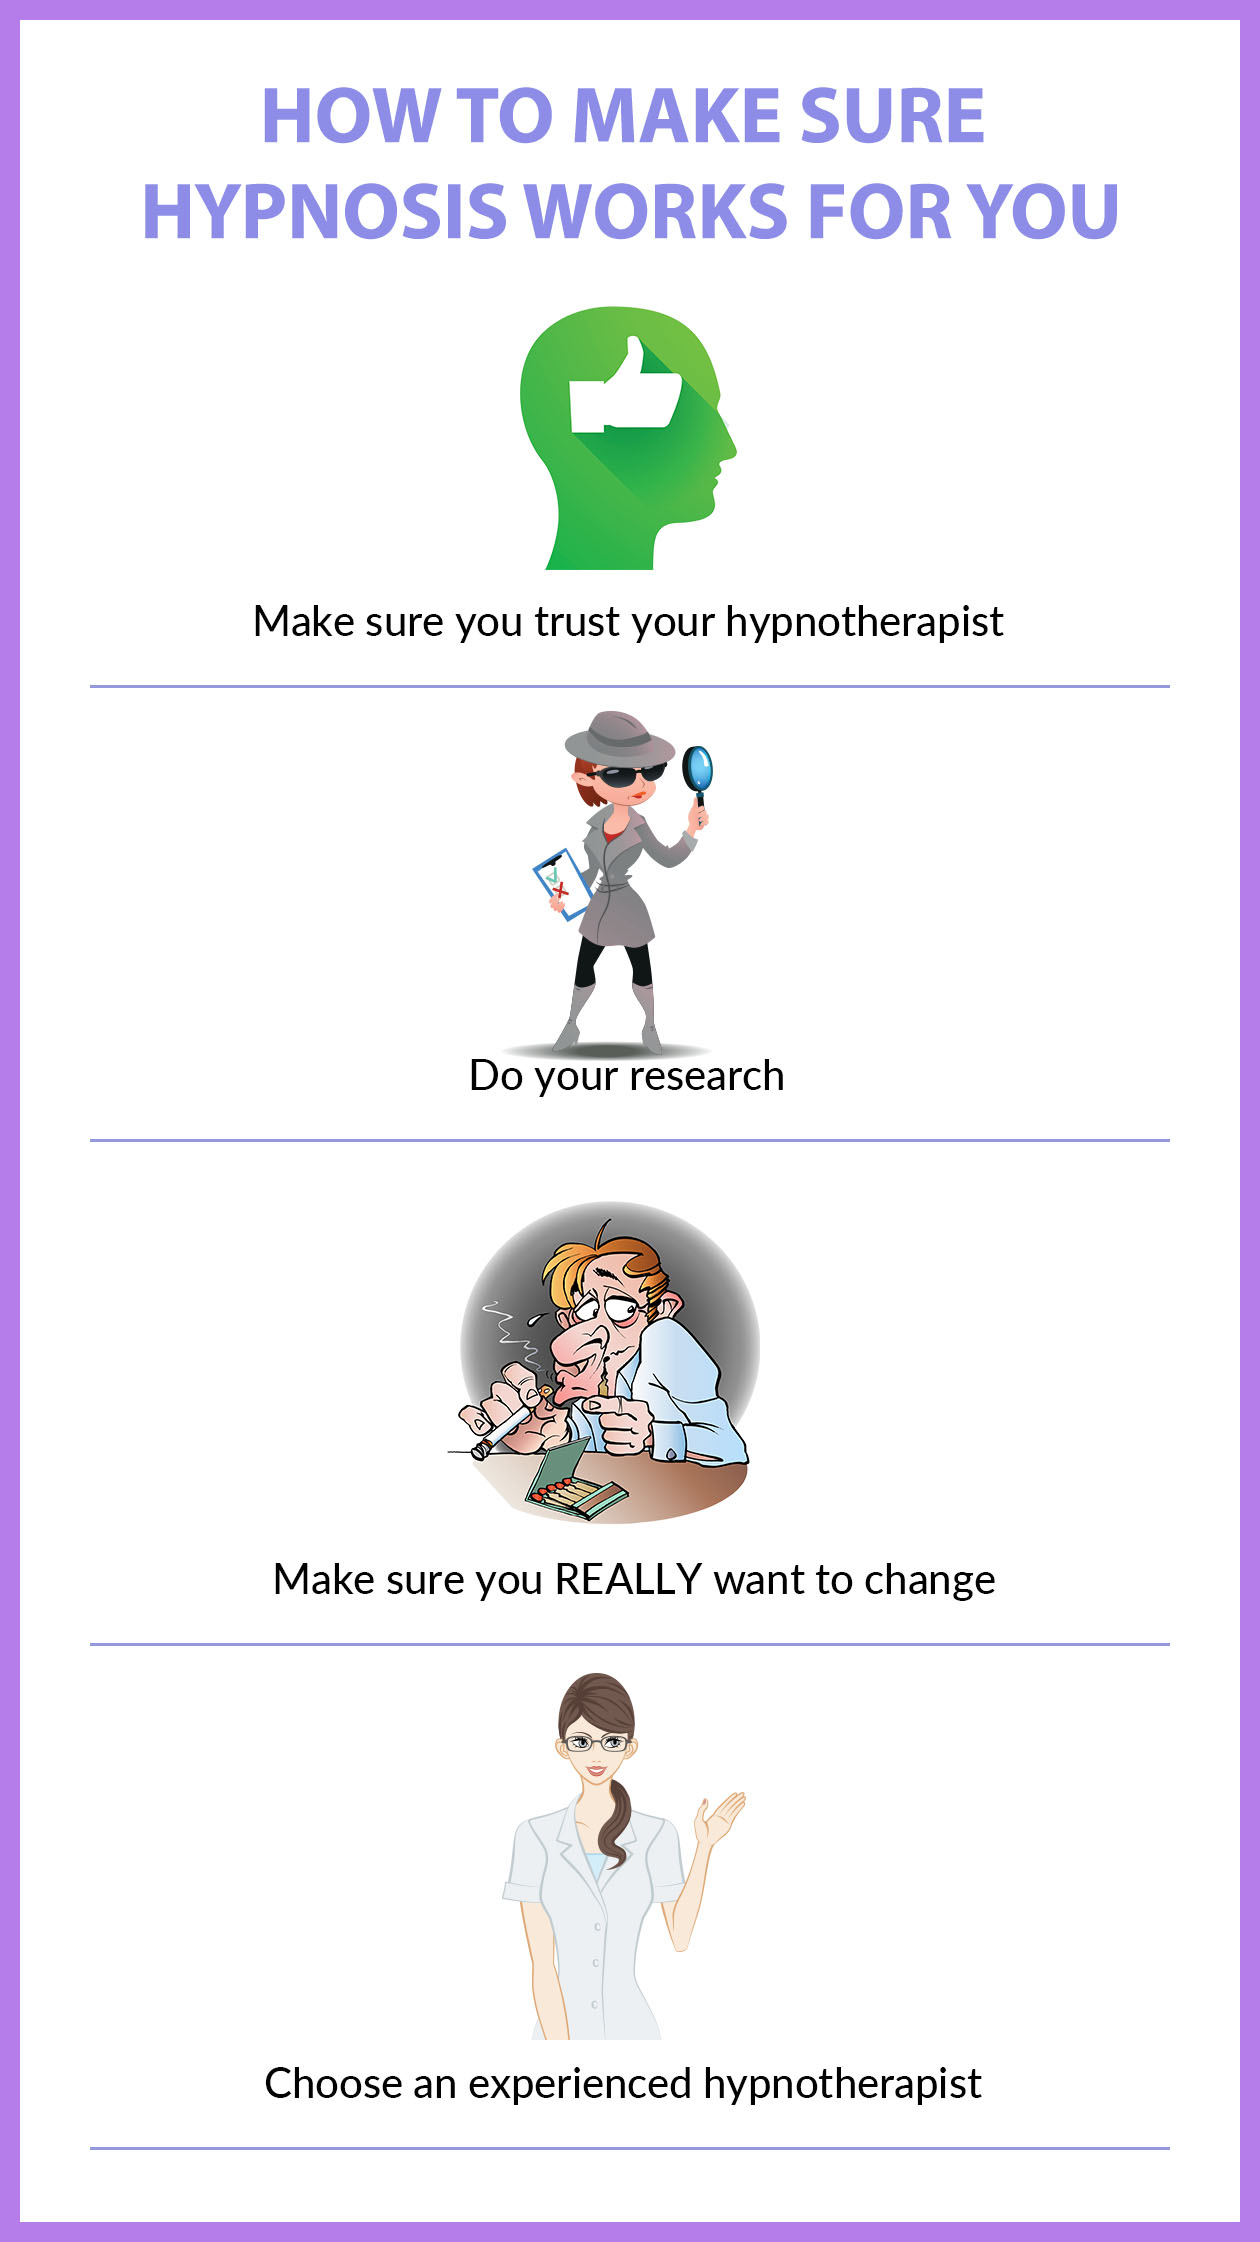 Tips to make sure hypnotherapy works